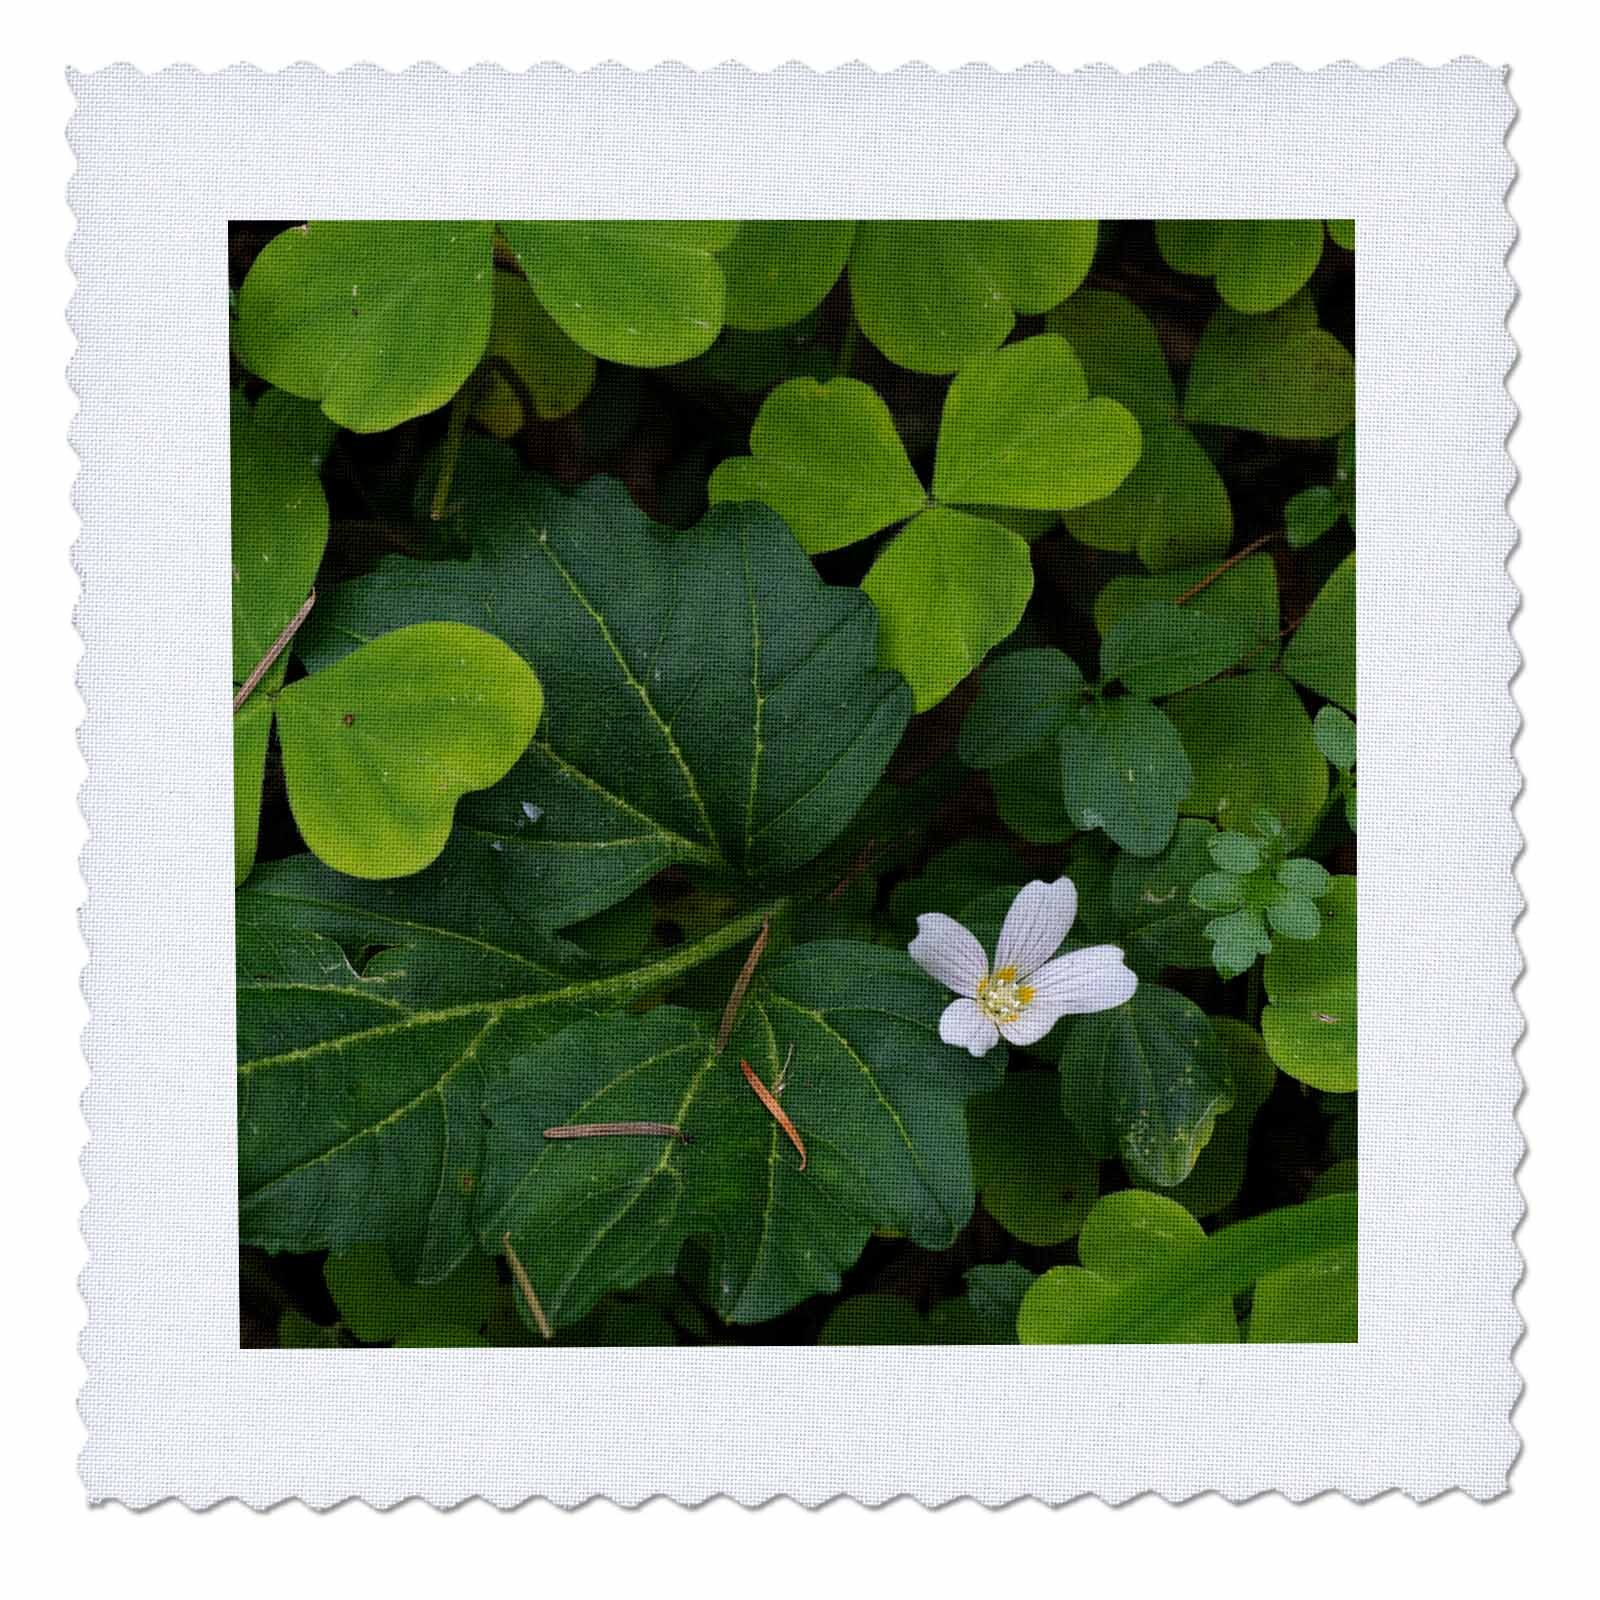 3dRose Danita Delimont - Botanical - Flowering Wood Sorrel in early spring, Silver Falls State Park, Oregon - 18x18 inch quilt square (qs_259902_7)